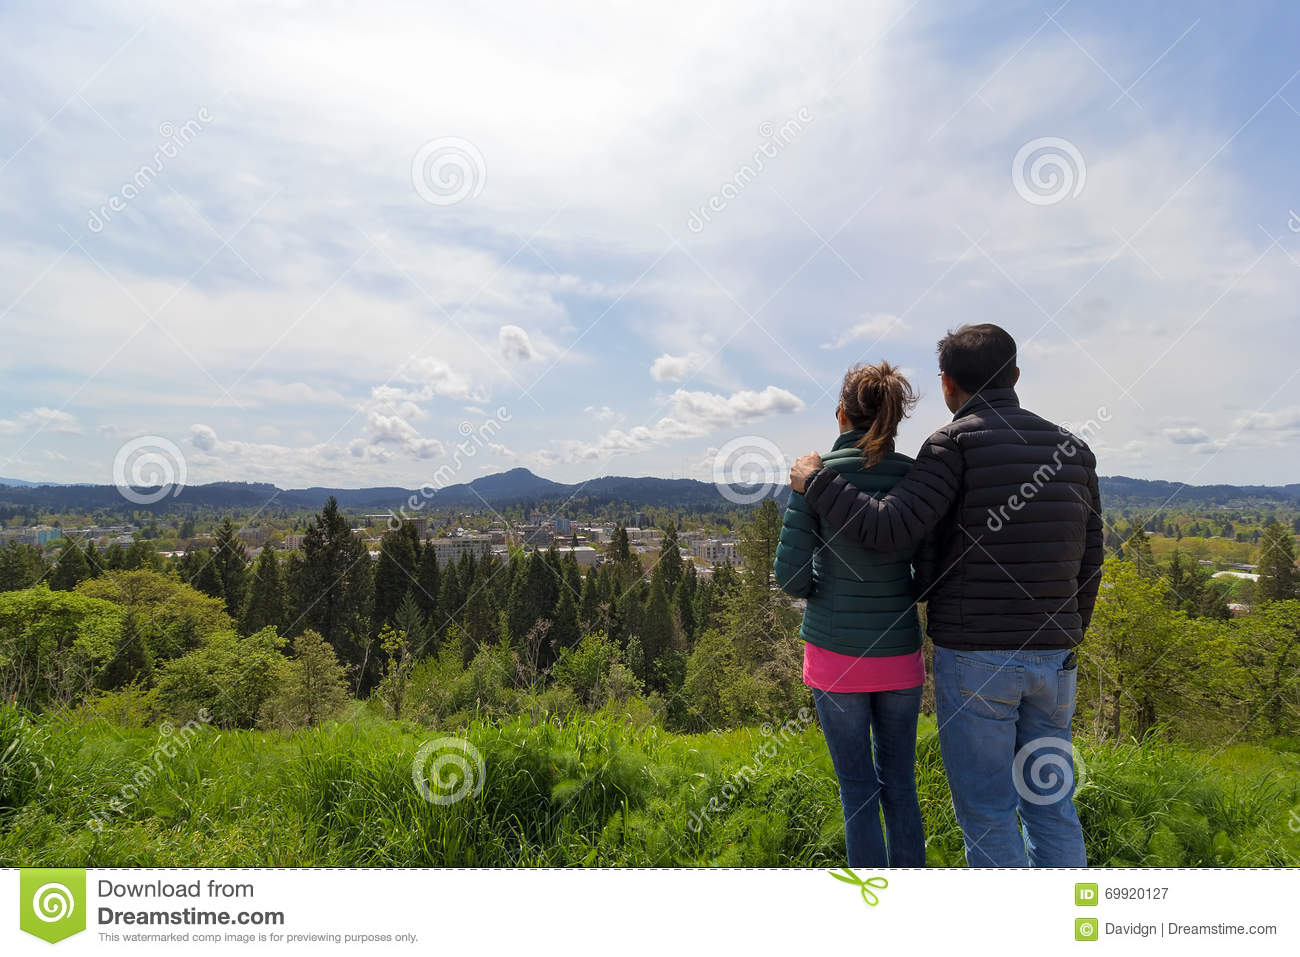 Couple at Viewpoint on Skinner Butte Park